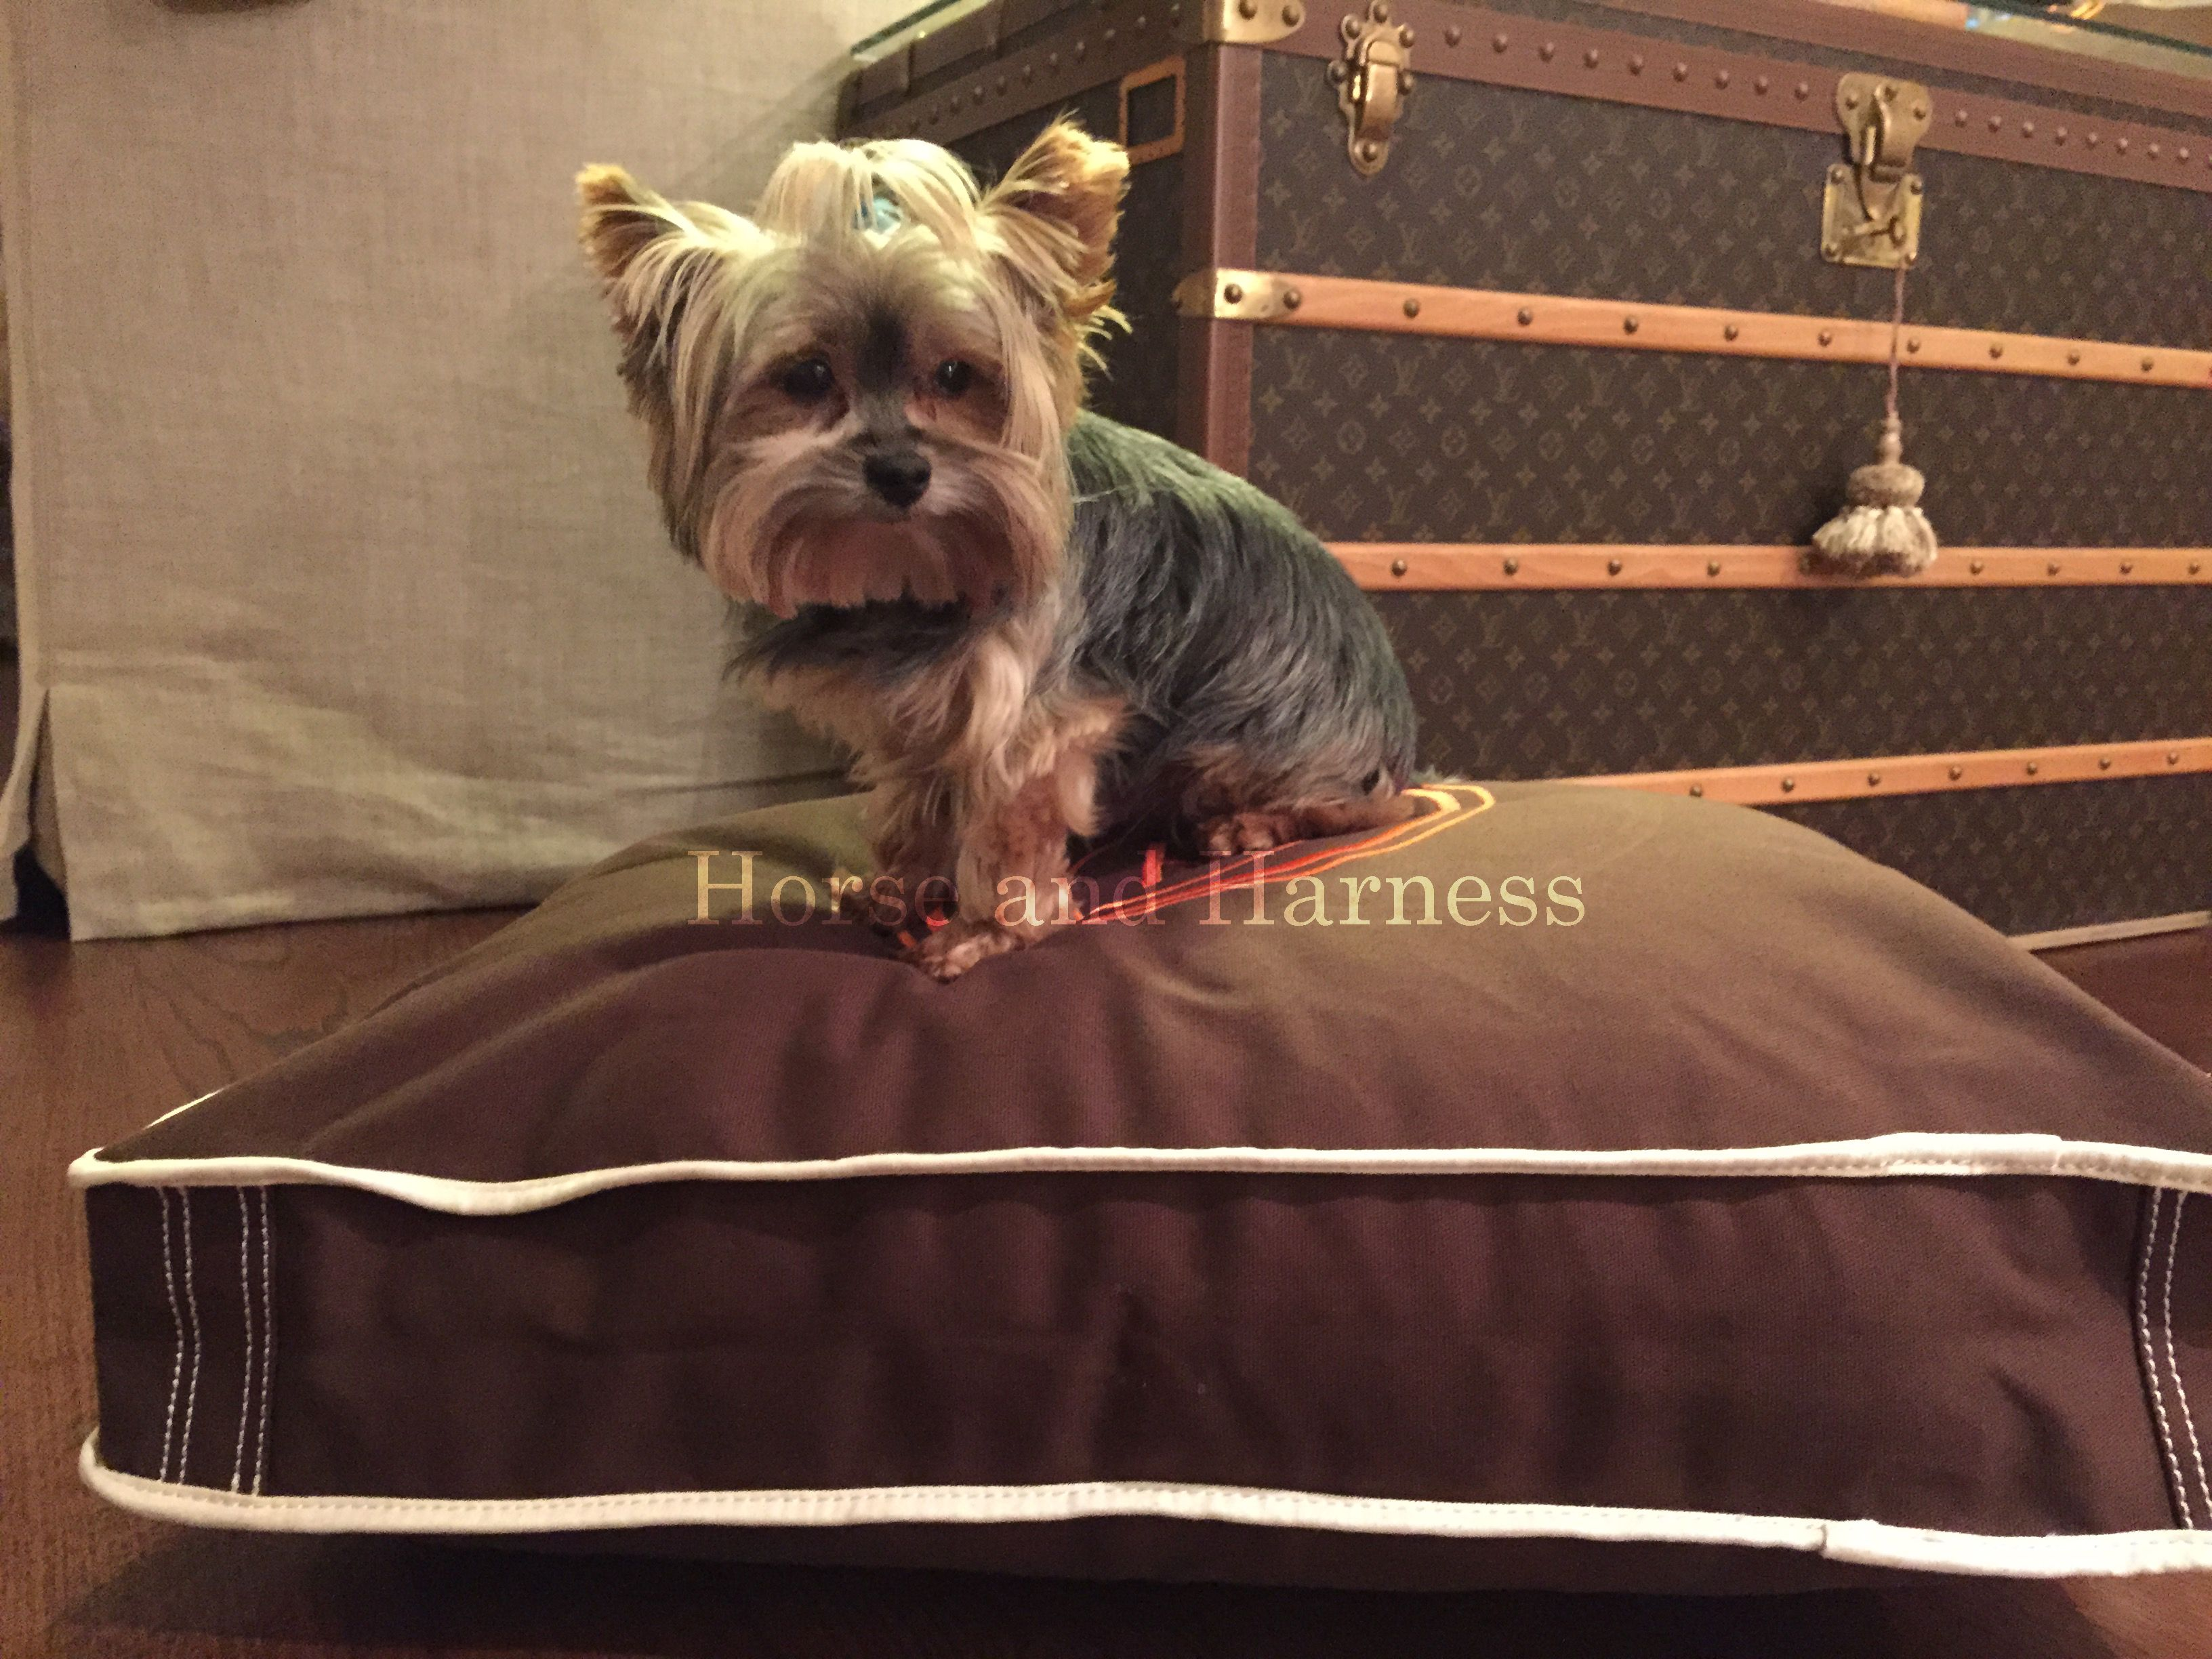 HERMES CUSTOM EMBROIDERED PET BED CUSHIONS GREAT HOME